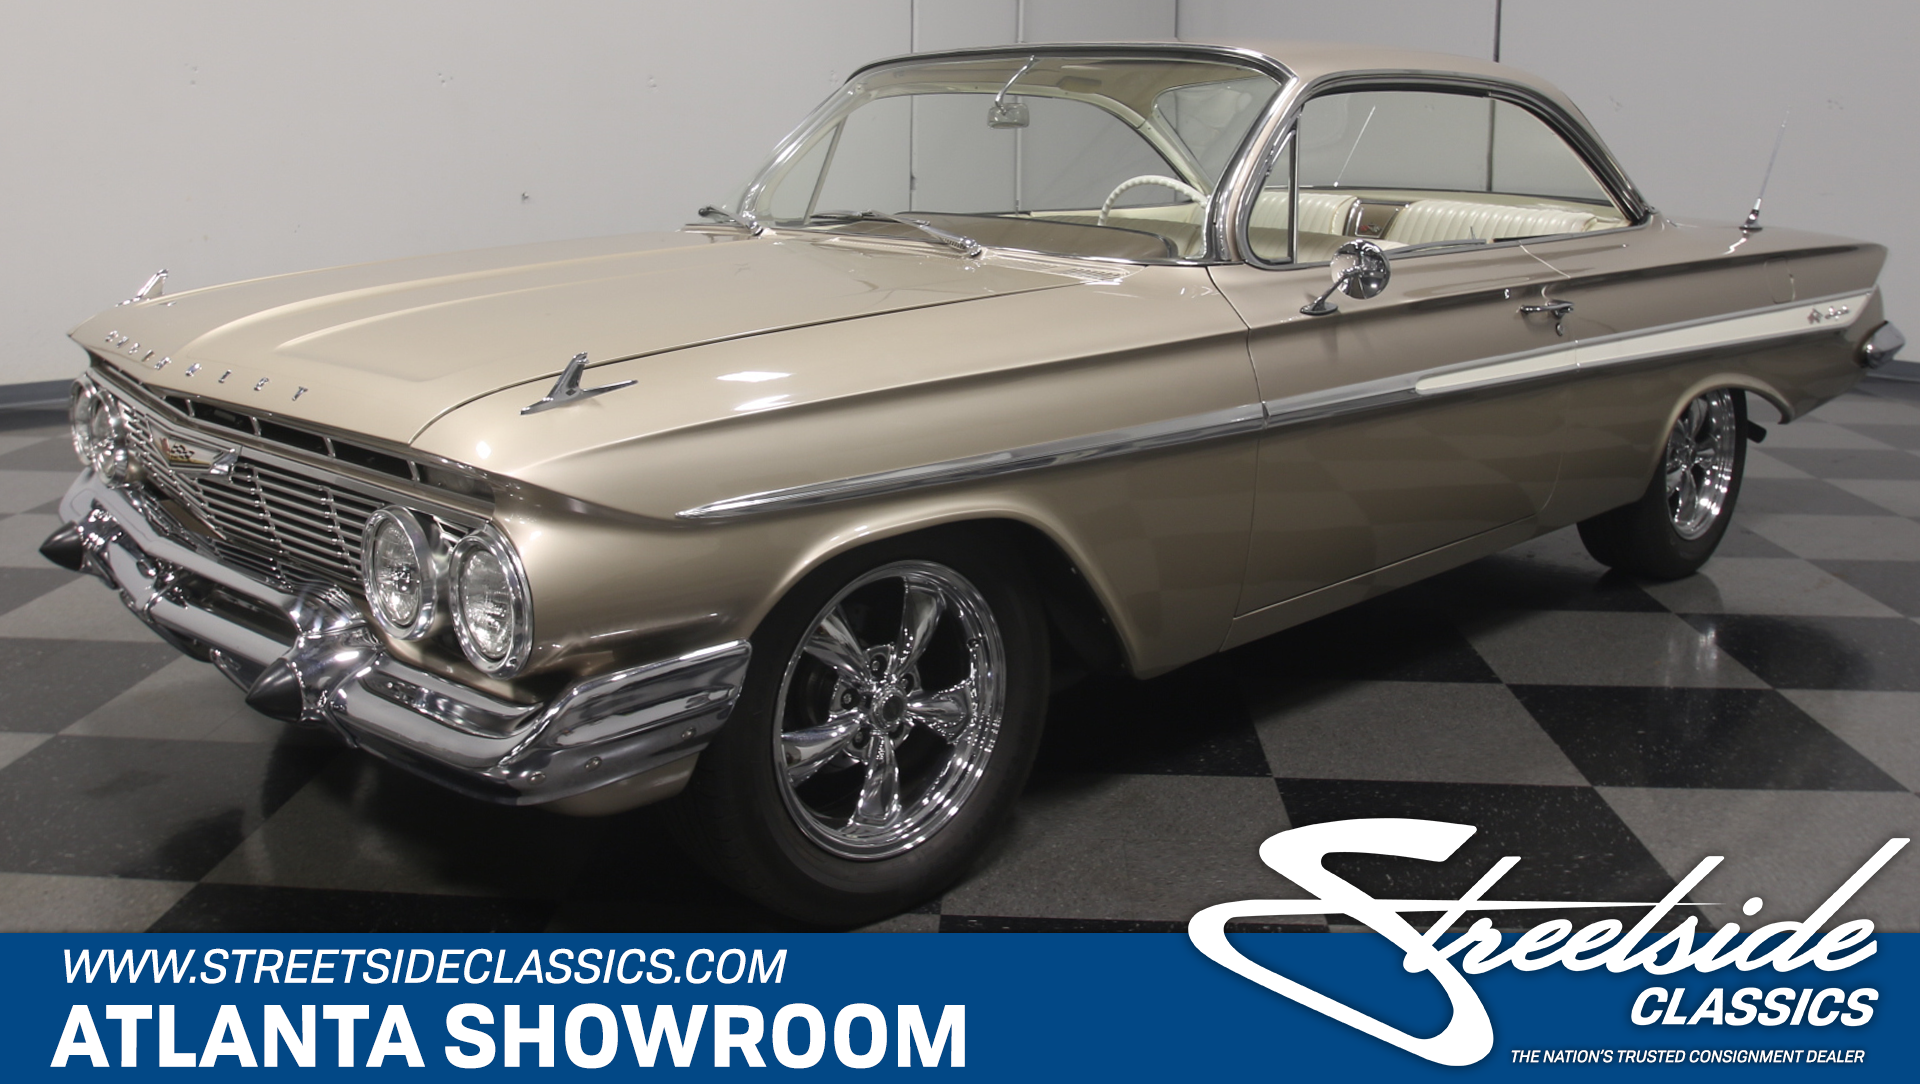 1961 Chevrolet Impala Bubble Top For Sale 67562 Mcg Chevy Ss